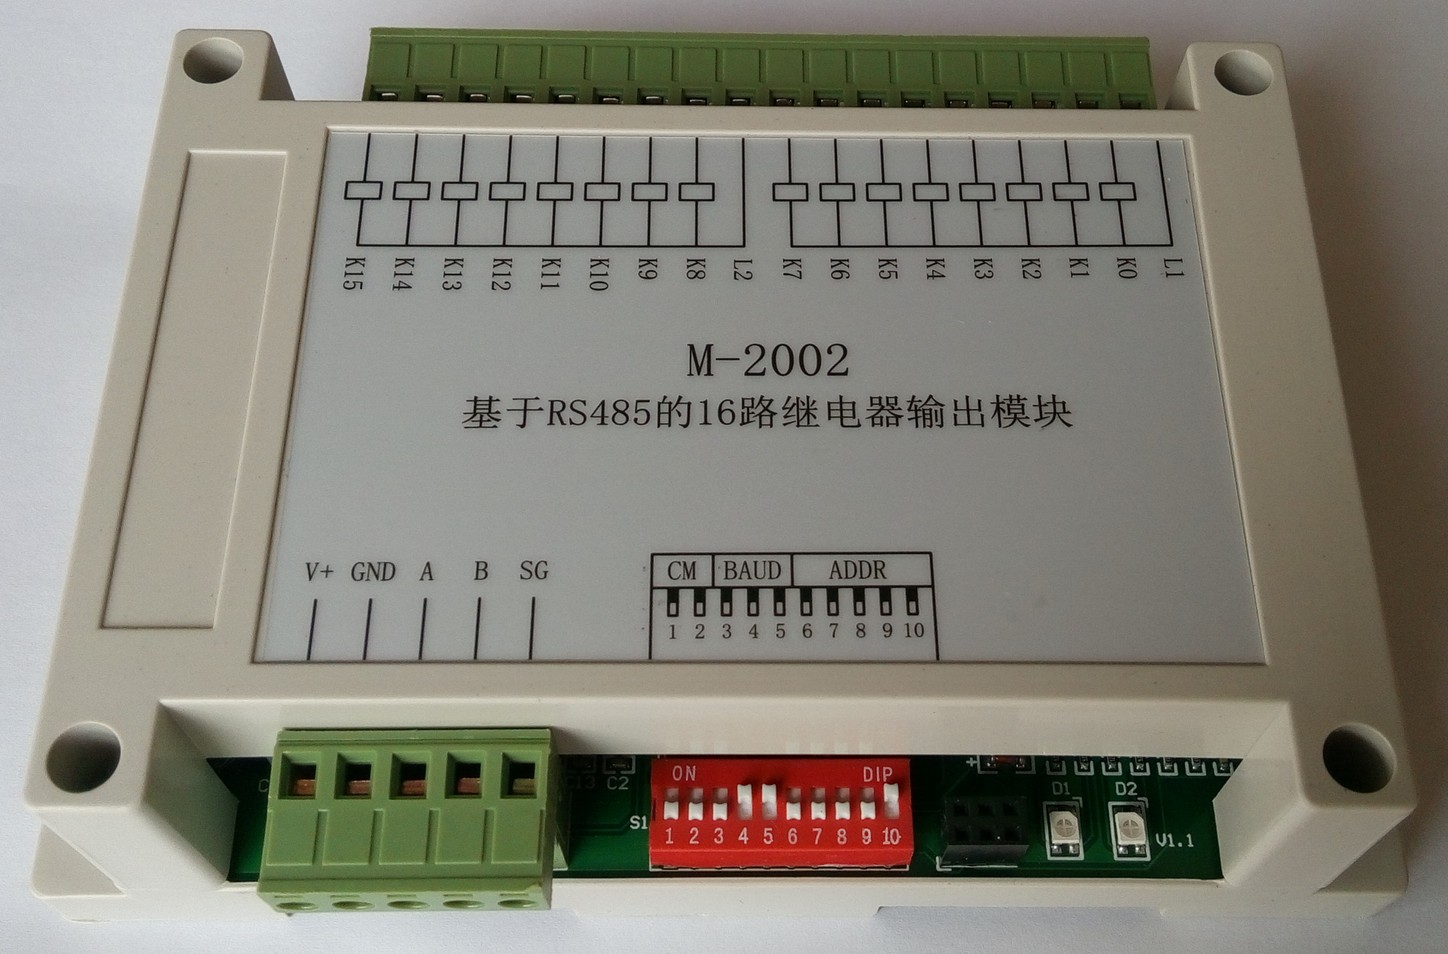 16 Road Relay Output DO Module RS485 Modbus Data Acquisition Communication Board Card PLC Extended IO 8 channels plc extender board io protective optocoupler relay module board